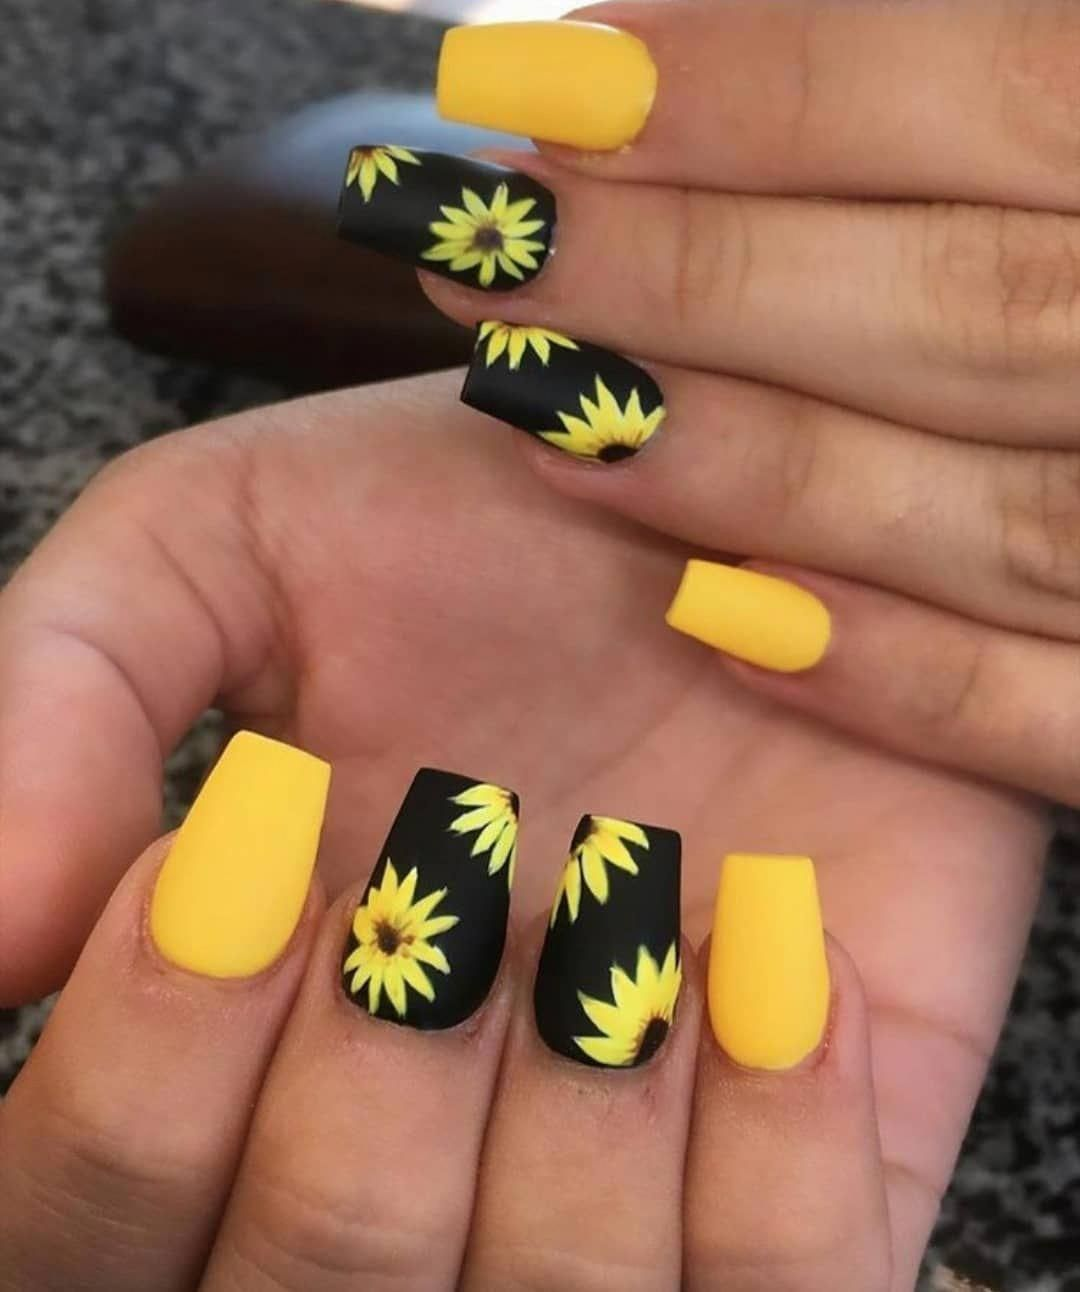 50 Amazing Sunflower Nail Designs For Summer Yellownails Short Acrylic Nails Designs Sunflower Nails Yellow Nails Design